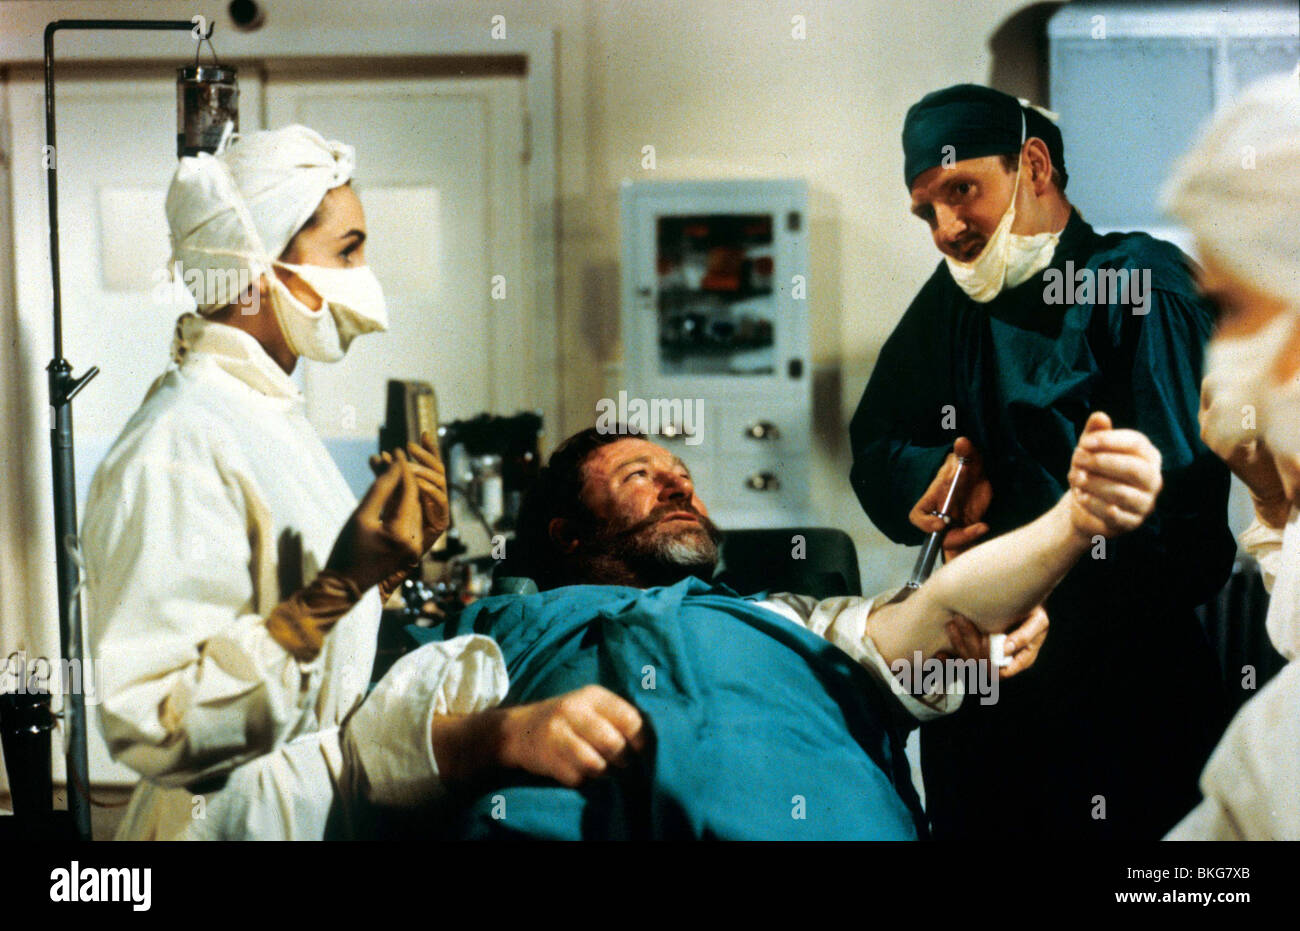 DOCTOR IN LOVE (1960) JAMES ROBERTSON JUSTICE, LESLIE PHILLIPS DIL 004 - Stock Image